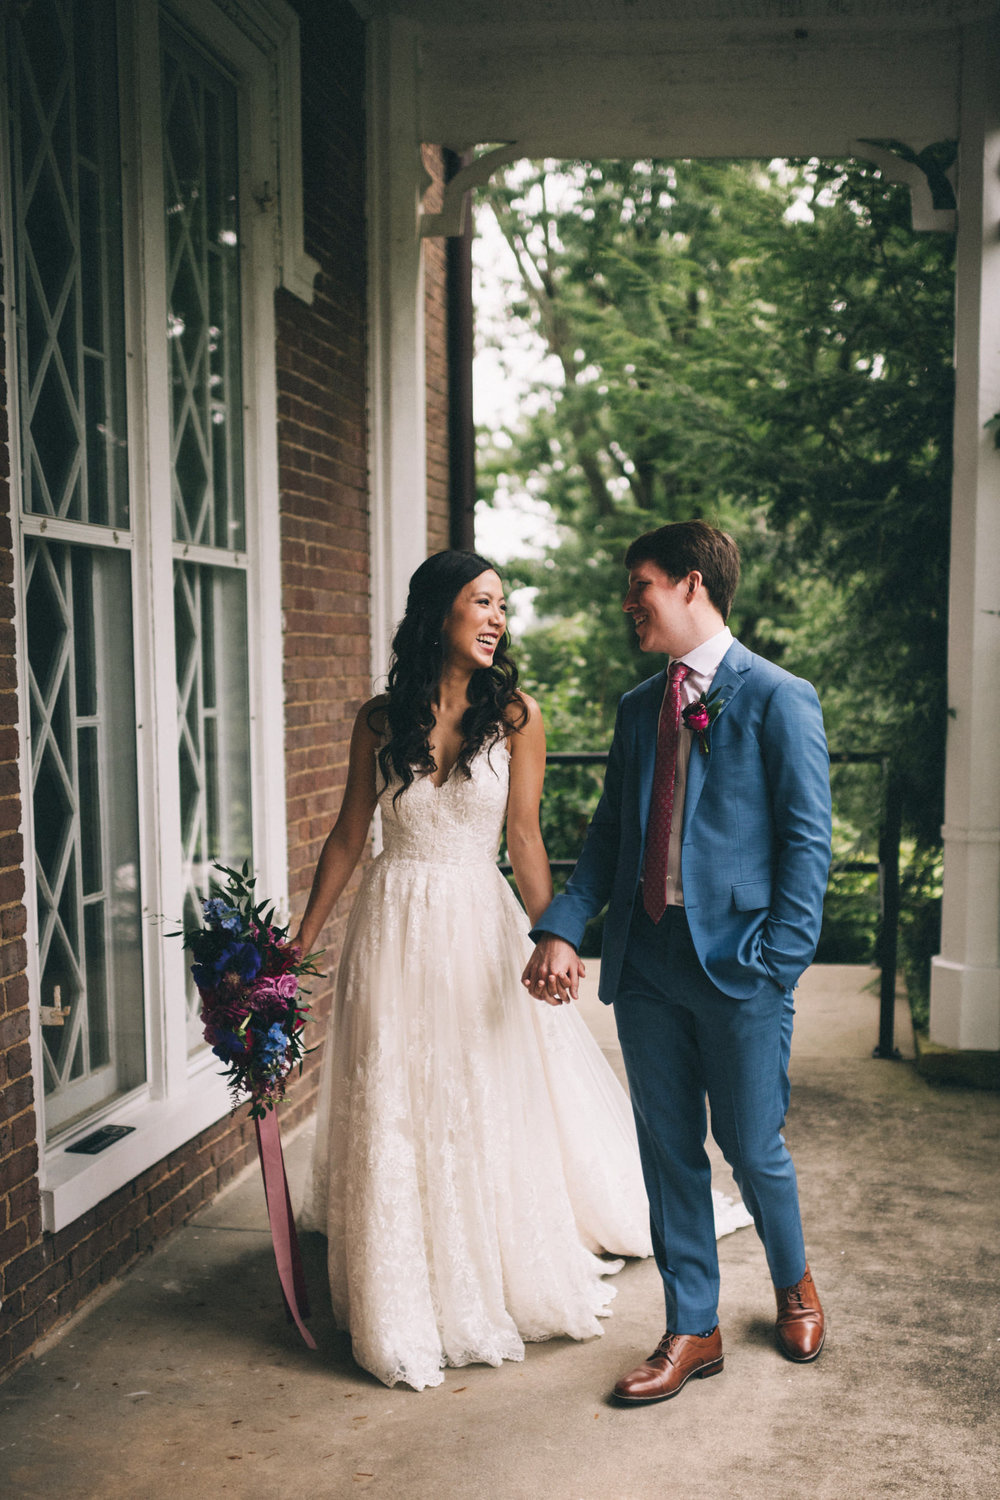 Louisville-Kentucky-Wedding-and-Elopement-Photographer-Sarah-Katherine-Davis-Photography-Summer-Jewel-Toned-Wedding-Chineese-Tea-Ceremony-Warrenwood-Manor-Danville-207.jpg